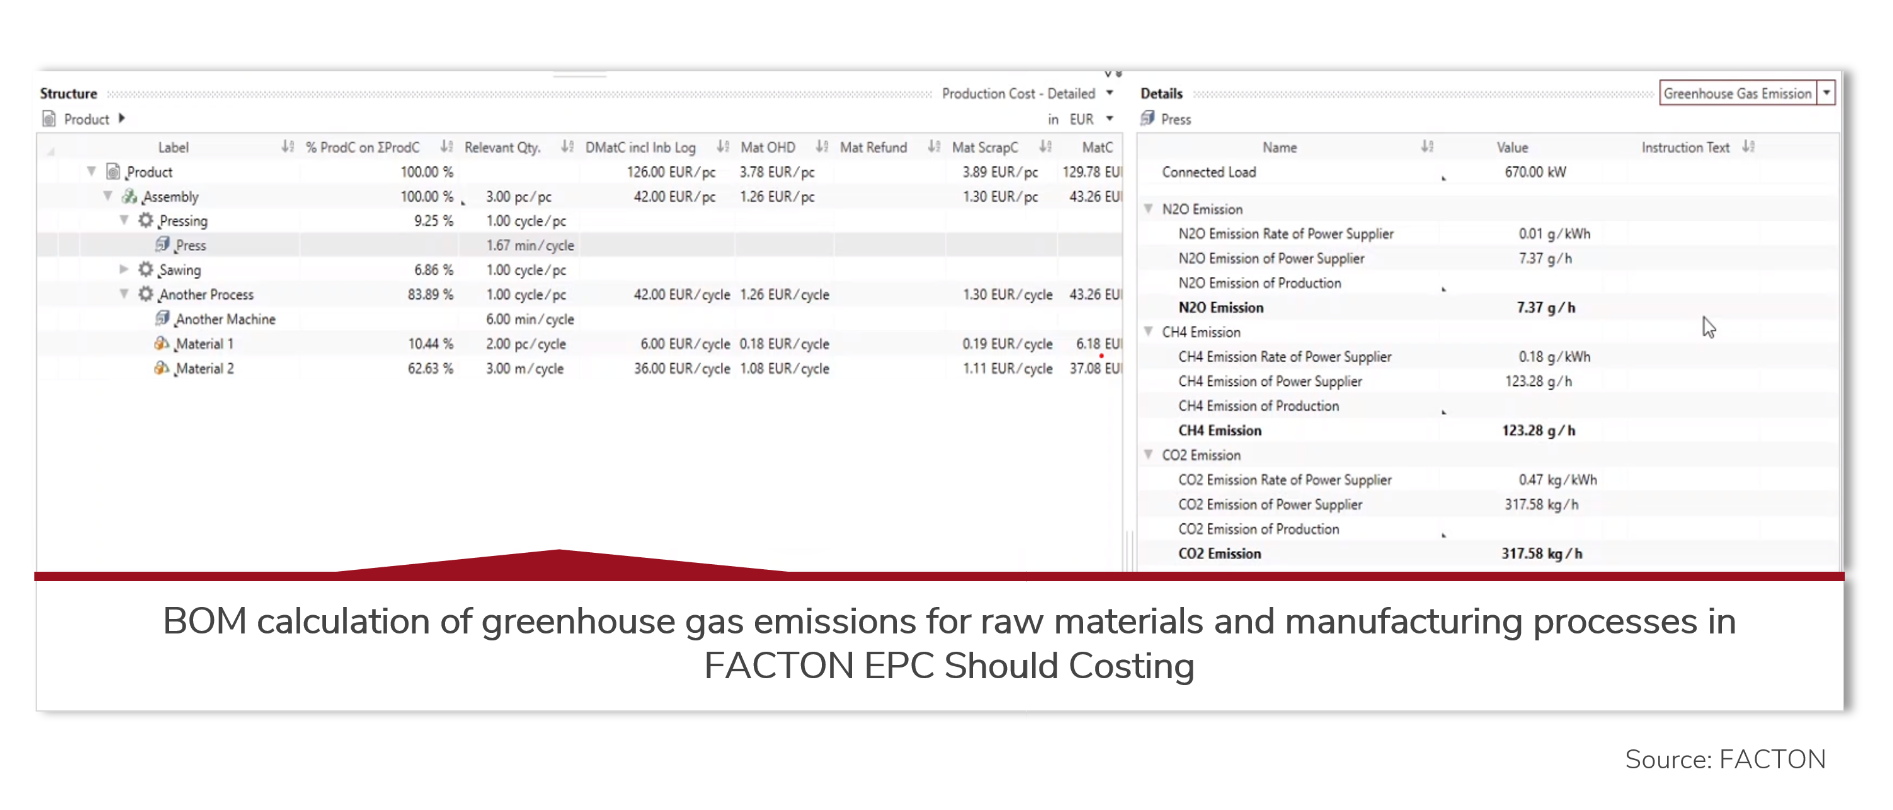 Greenhouse gas emissions calculation in FACTON EPC